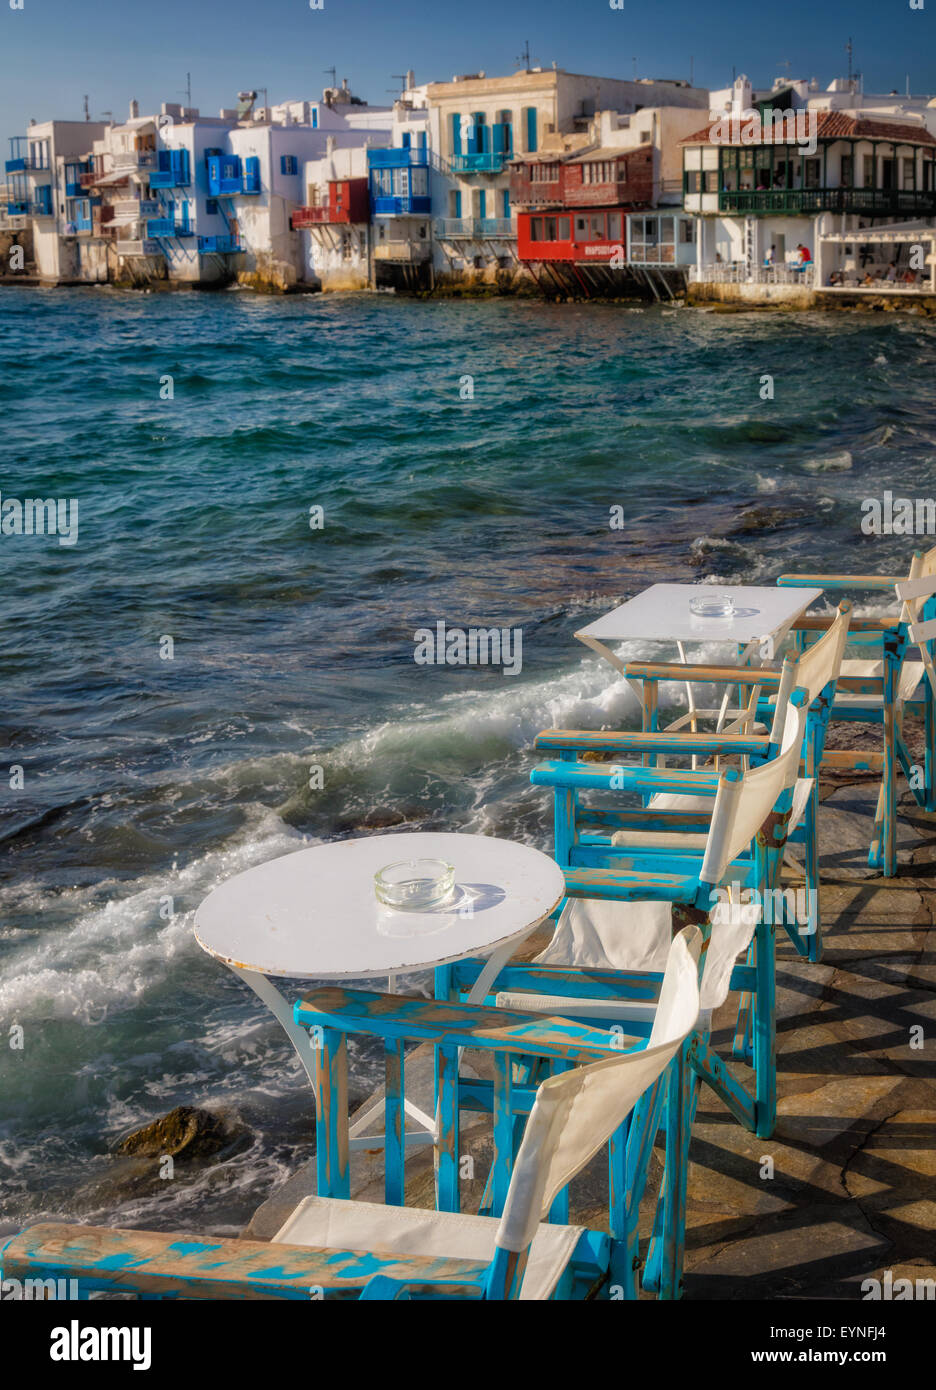 Mykonos Little Venice - rows of fishing houses line the waterfront with their balconies hanging over the sea. - Stock Image